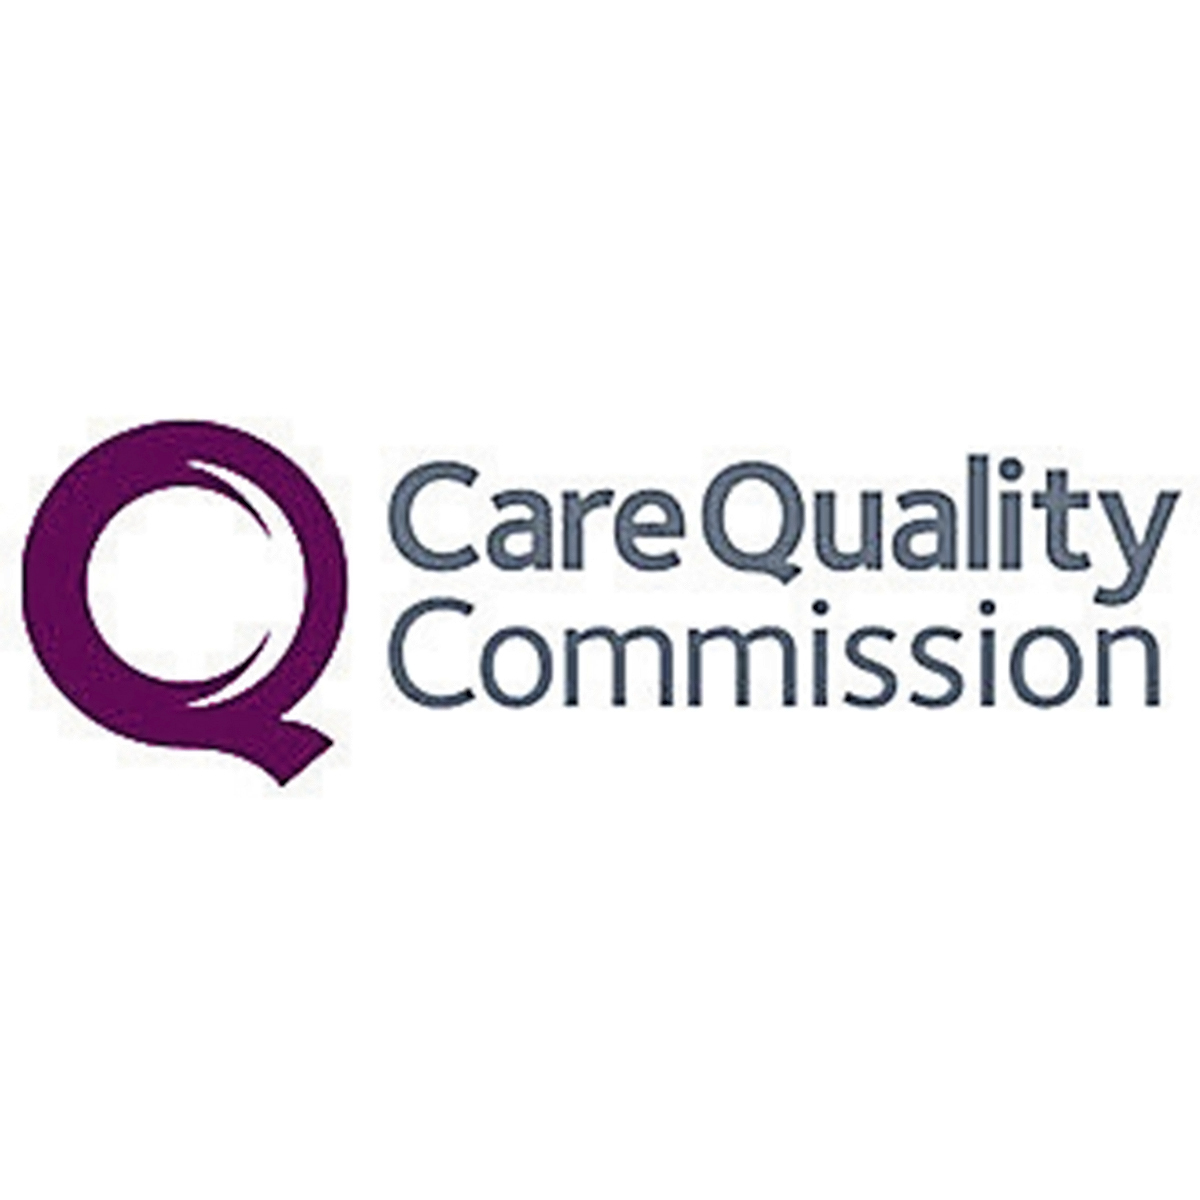 Home care service provider branded 'inadequate' by inspectors